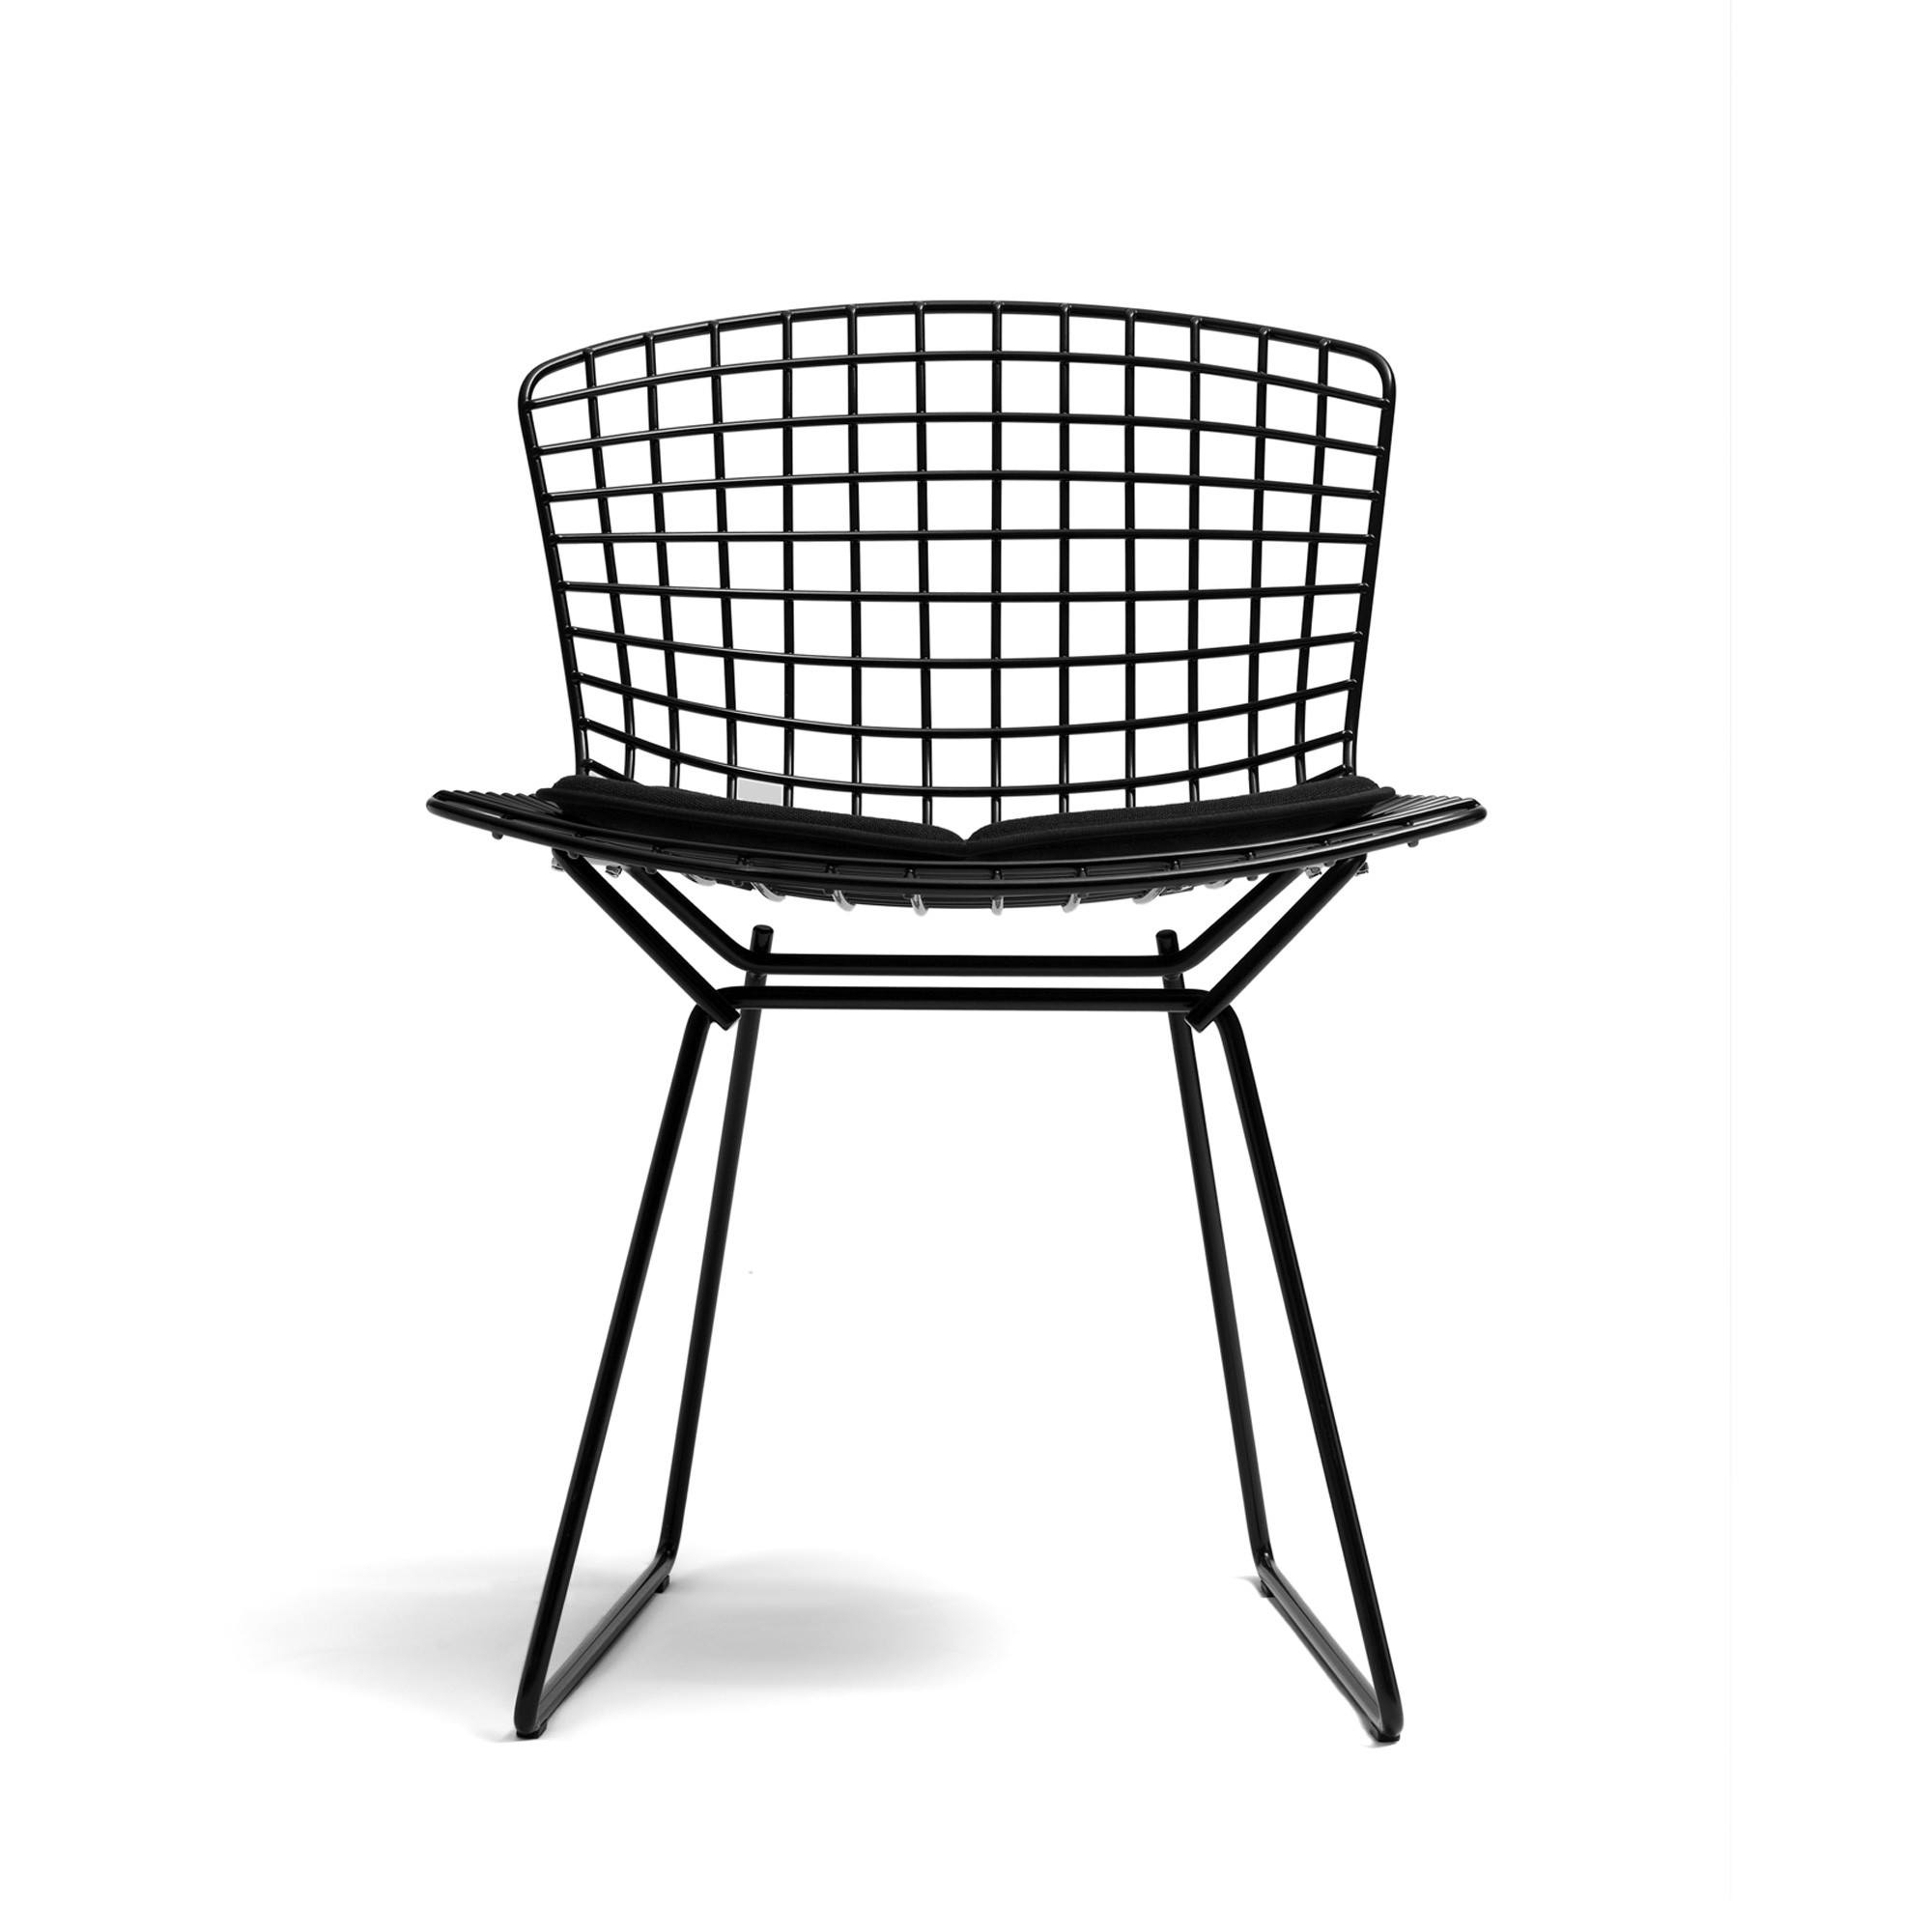 Widely Used Cole Ii Black Side Chairs In Scandinavian Outdoor Garden & Patio Furniture (View 20 of 20)